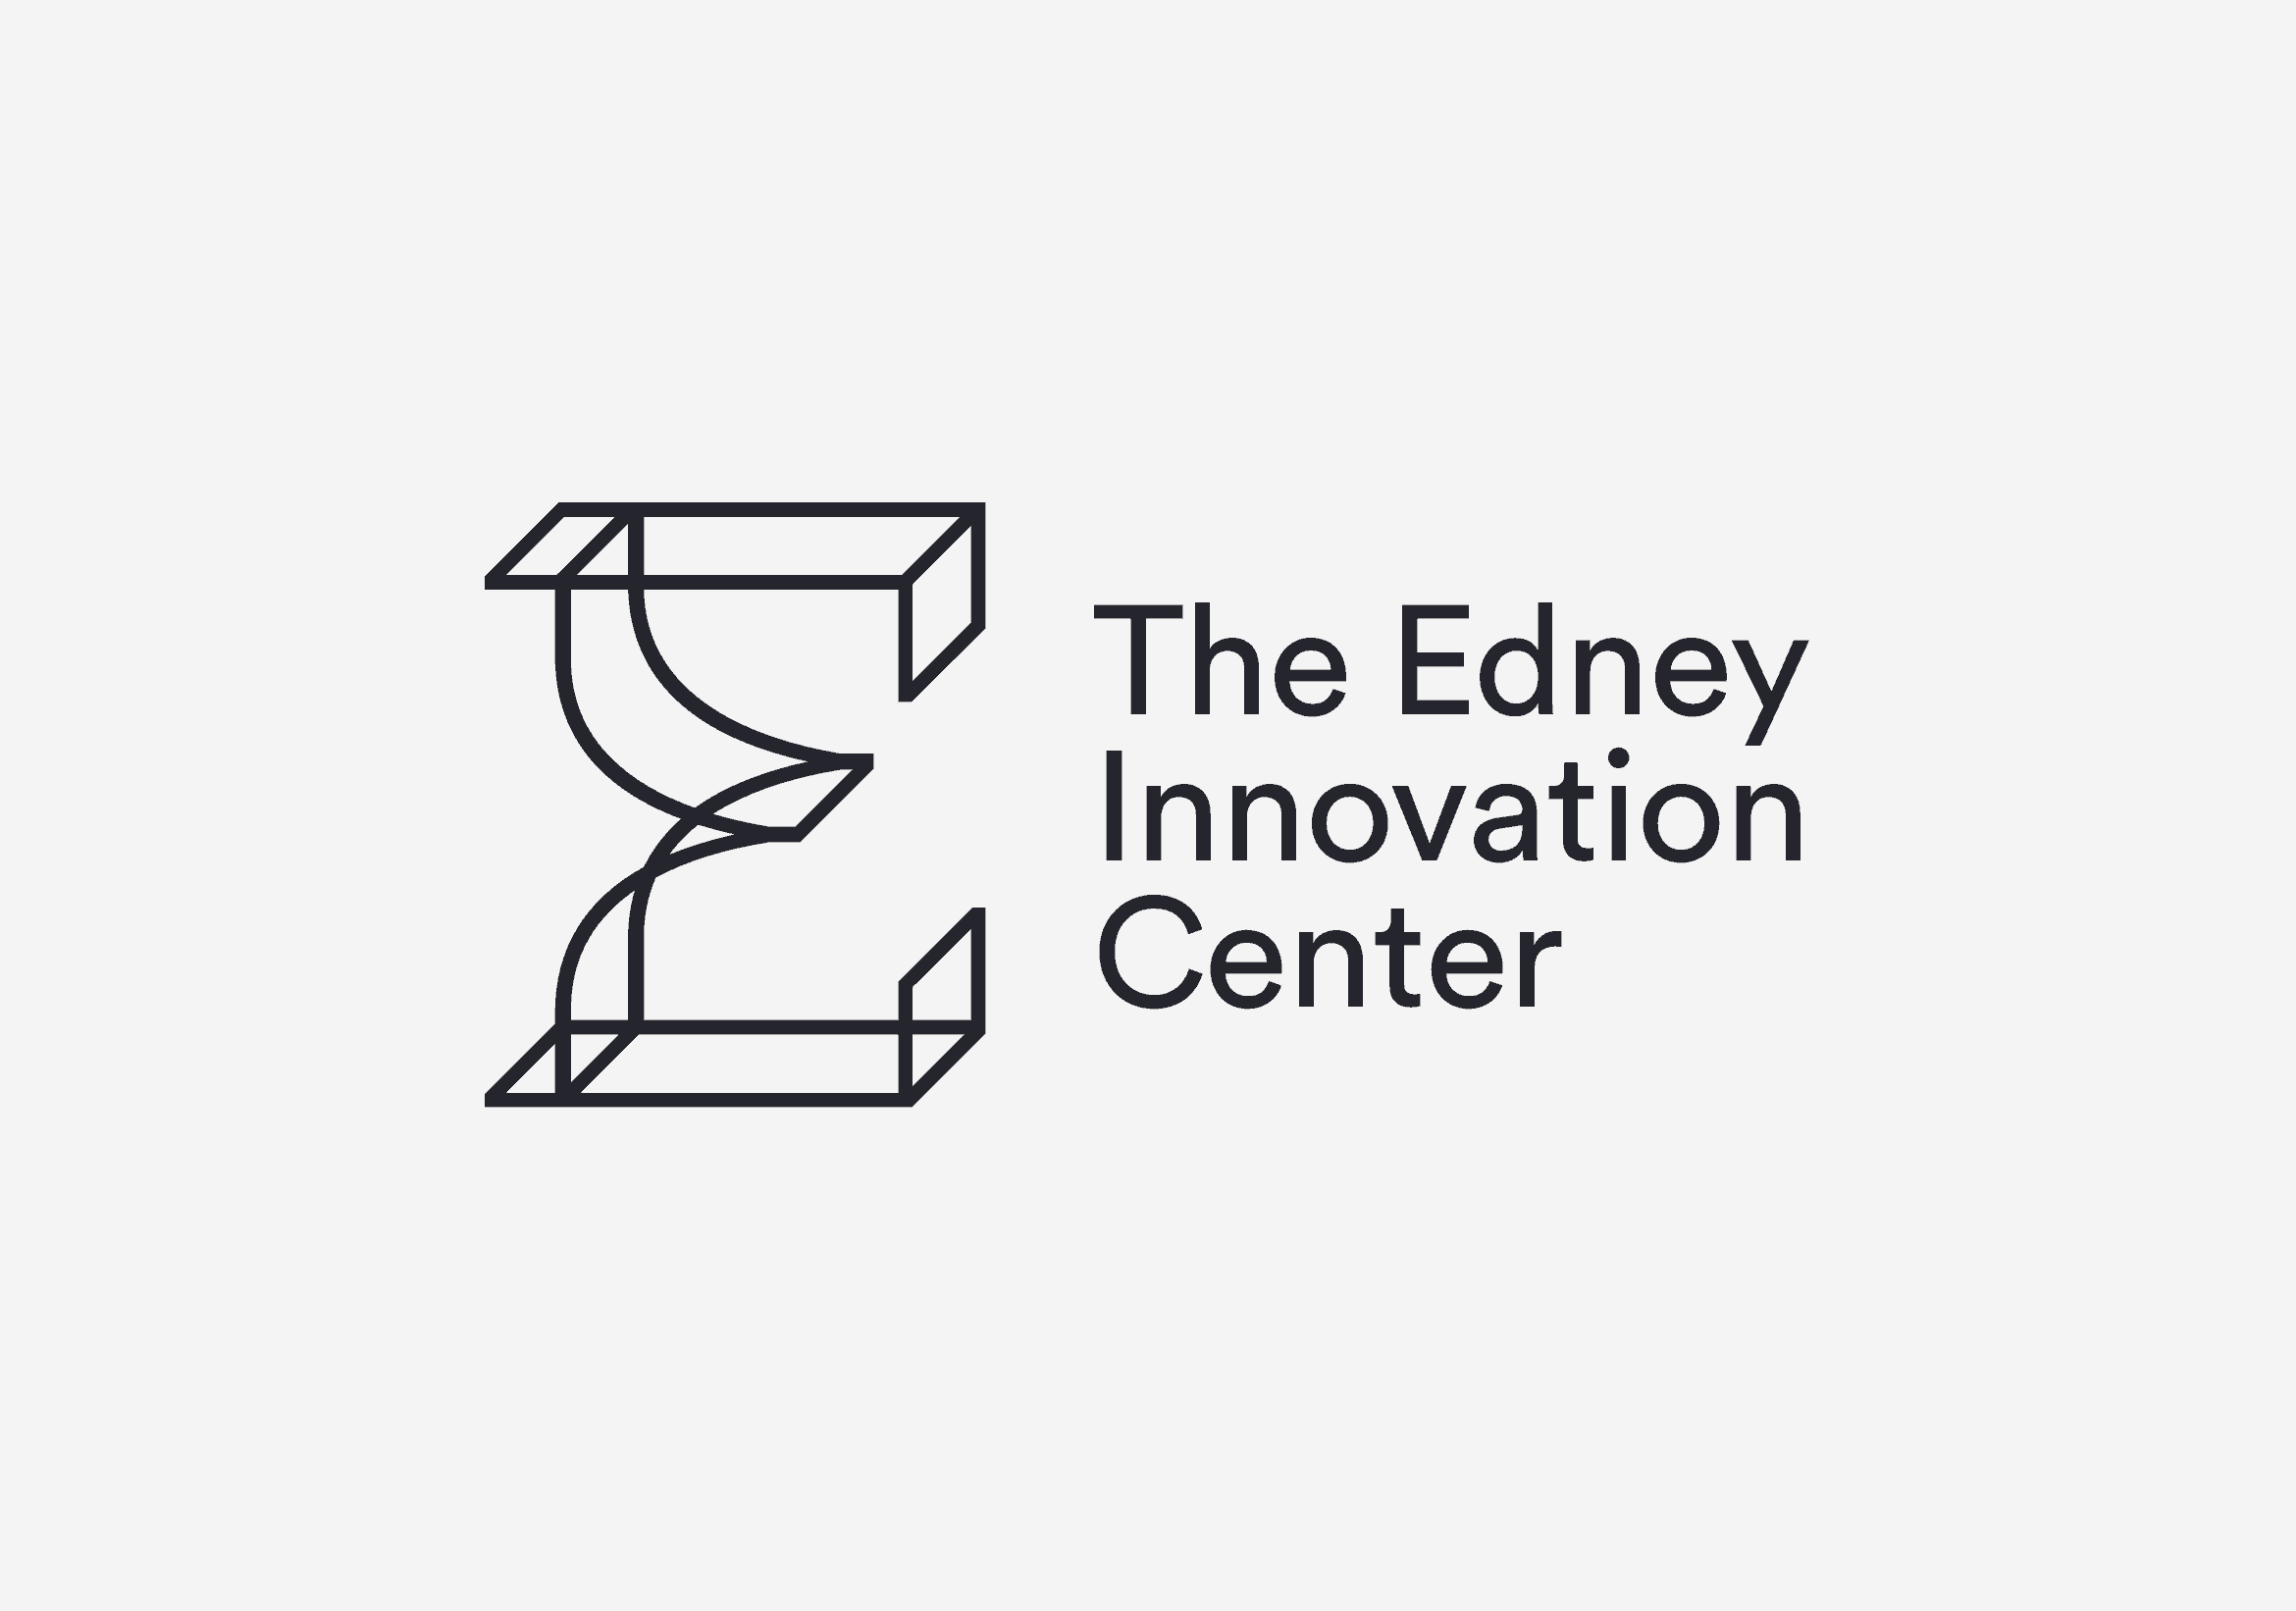 logos-edney-logo